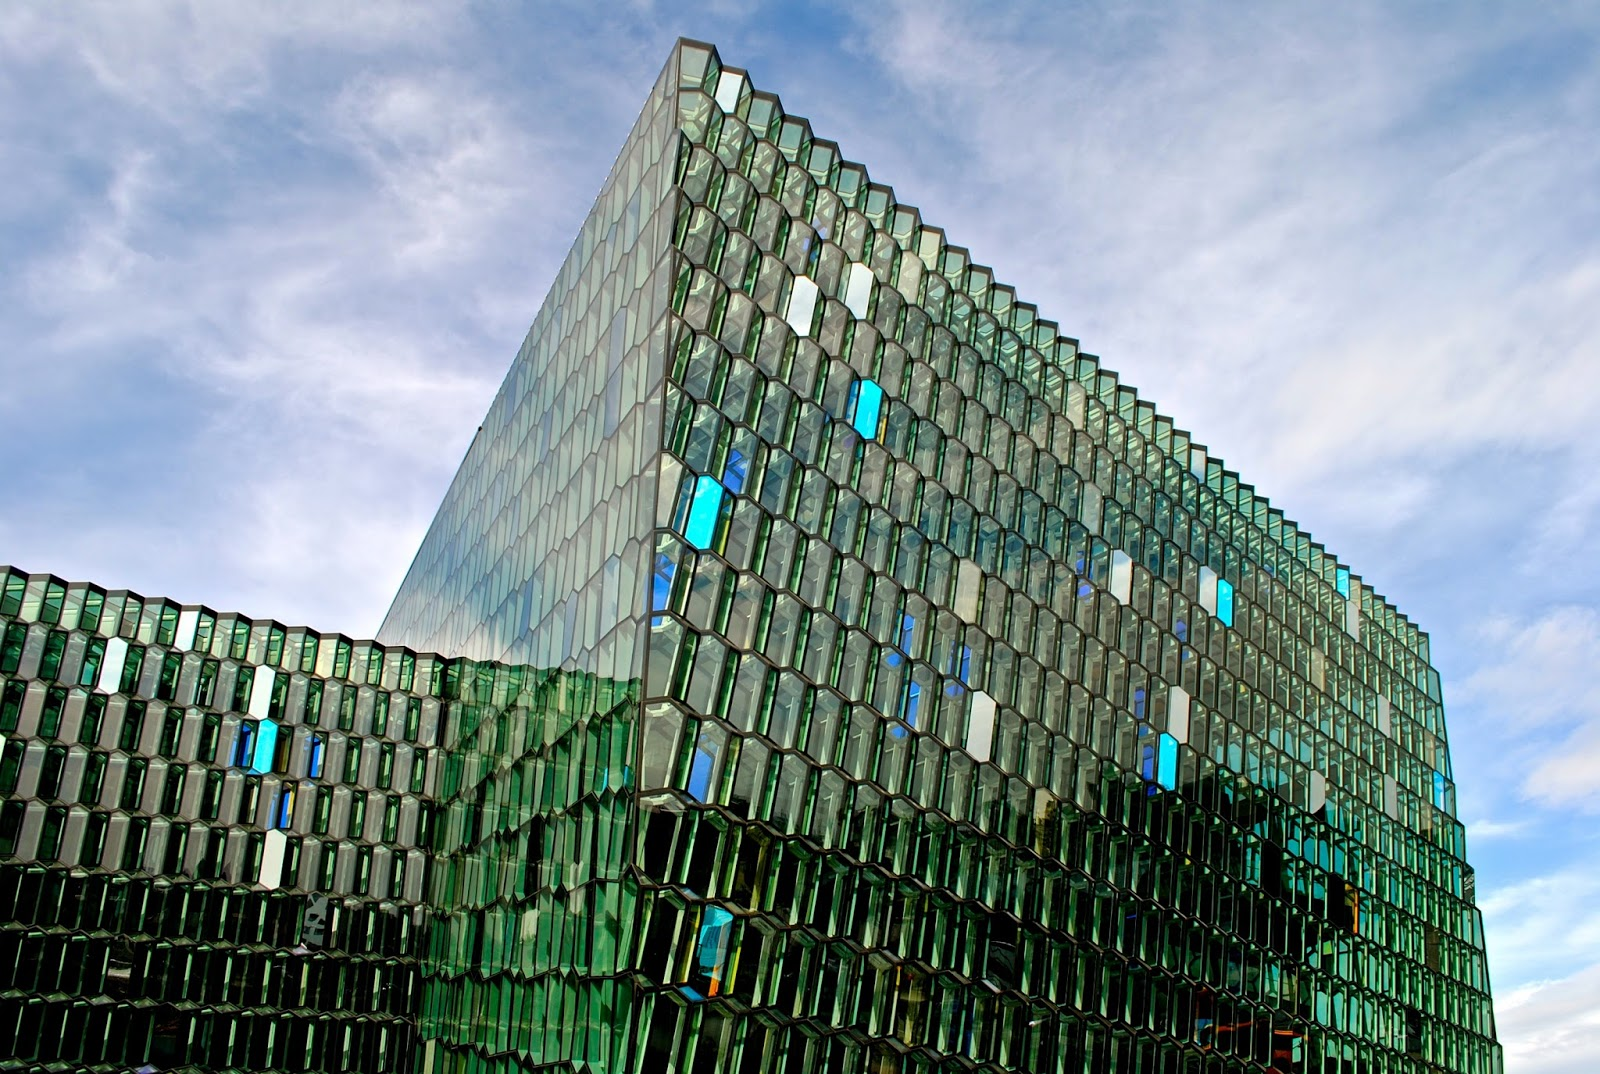 Things to do in Reykjavik Iceland : Visit the Harpa concert hall